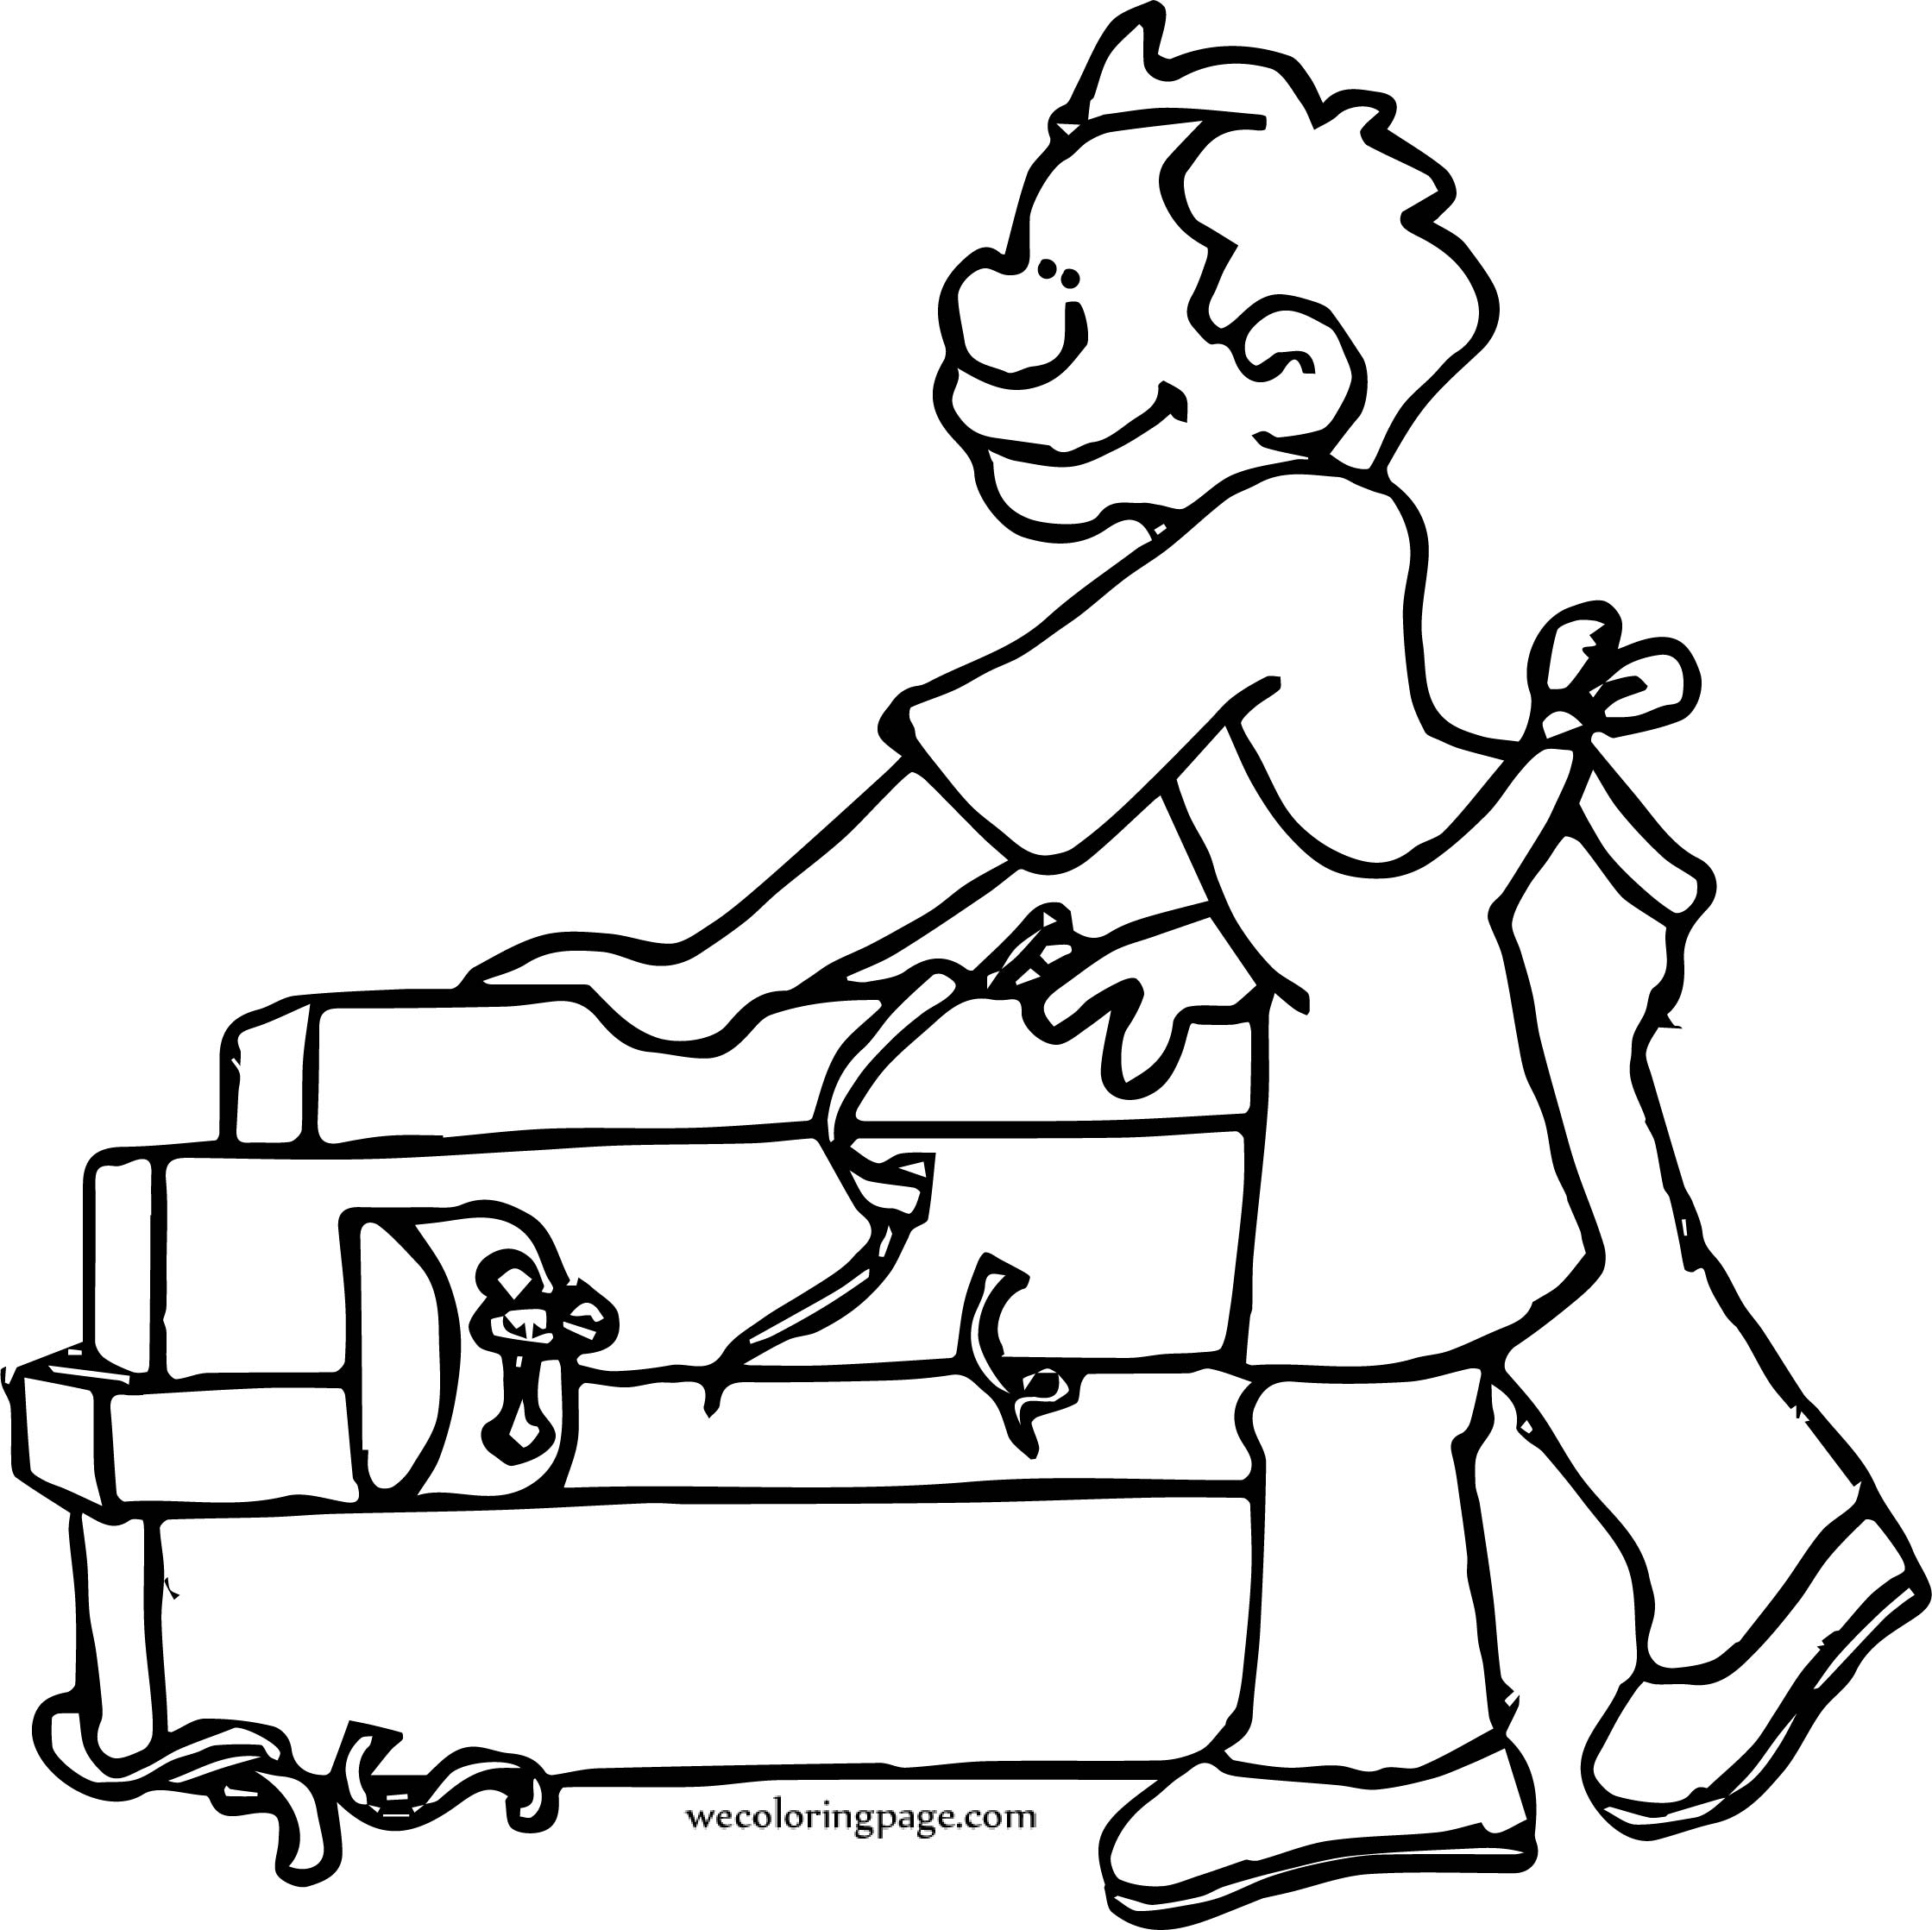 carpenter working coloring page wecoloringpage